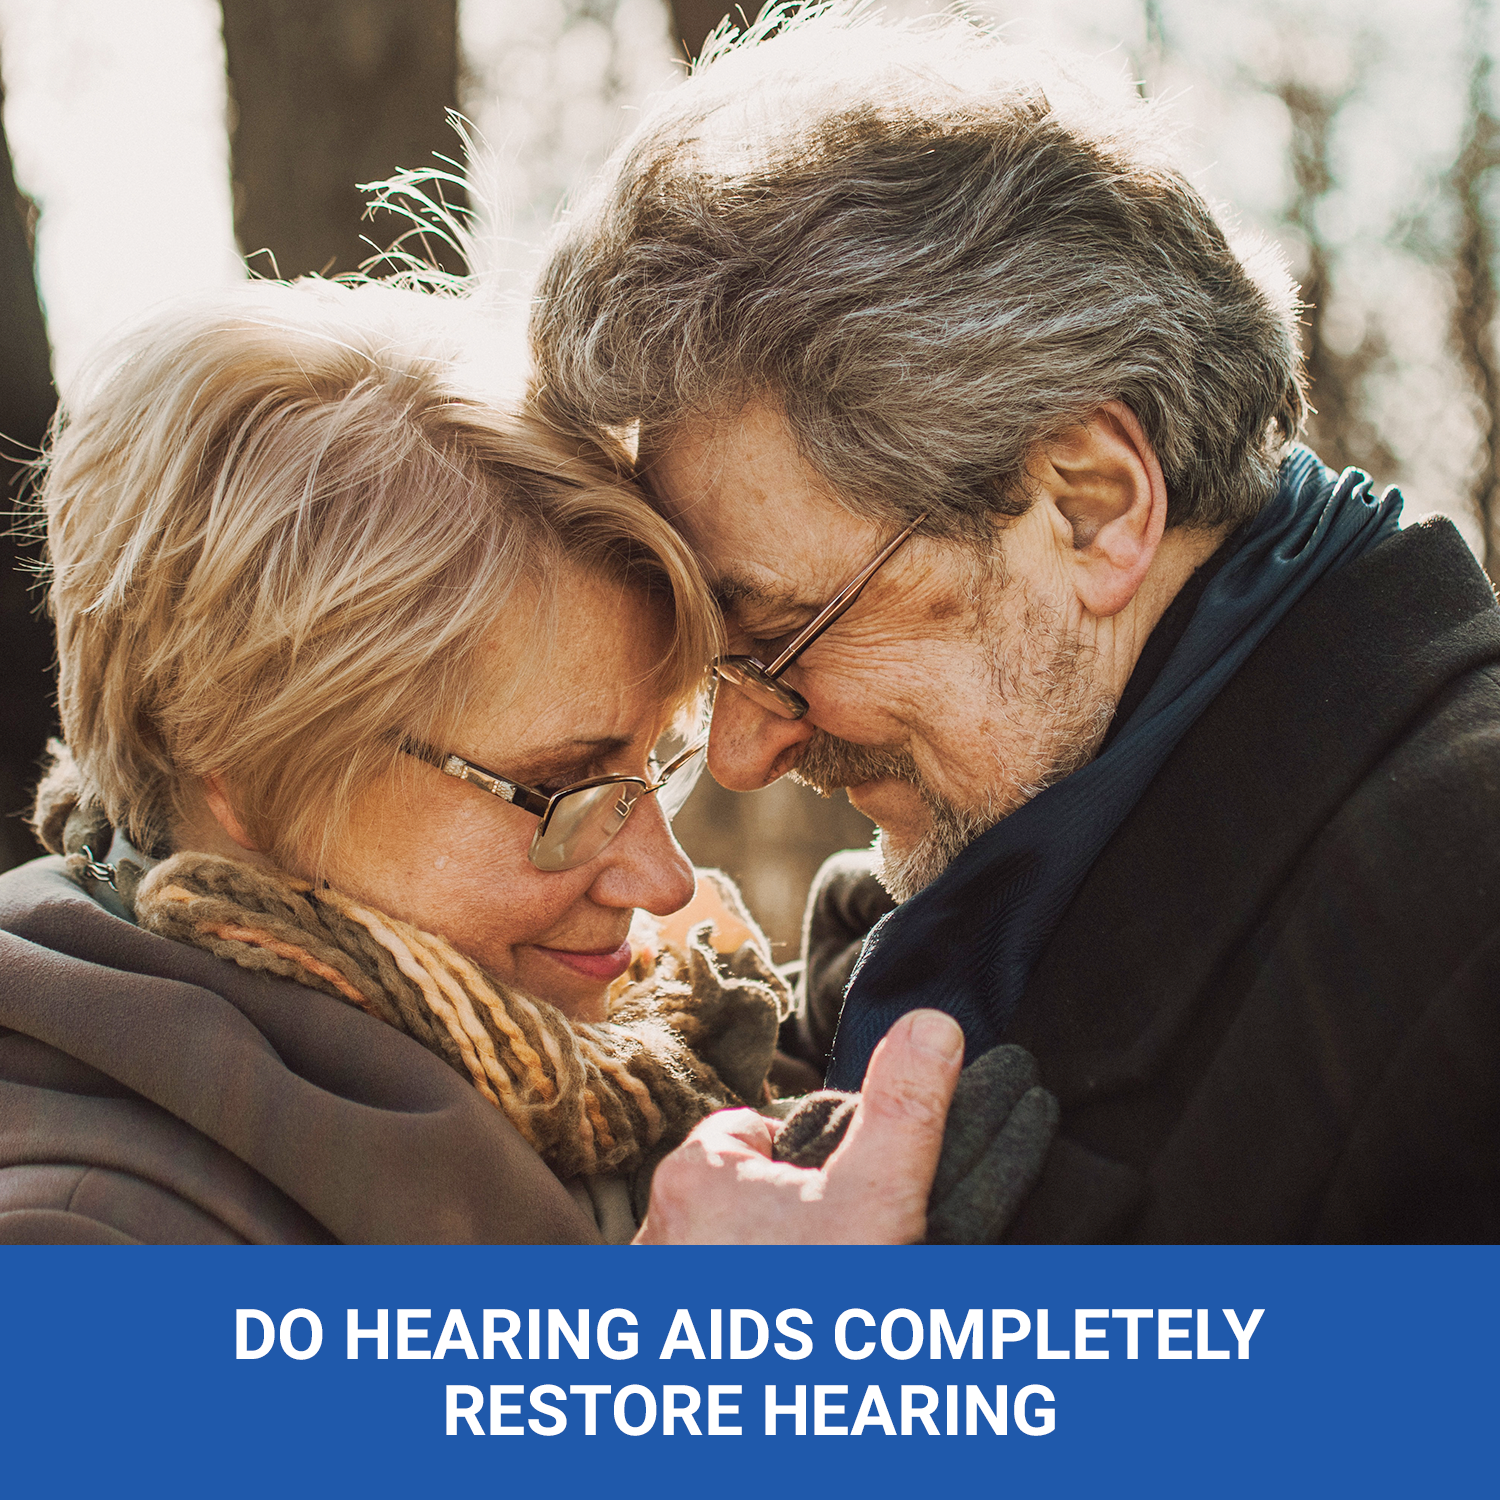 Do Hearing Aids Completely Restore Hearing